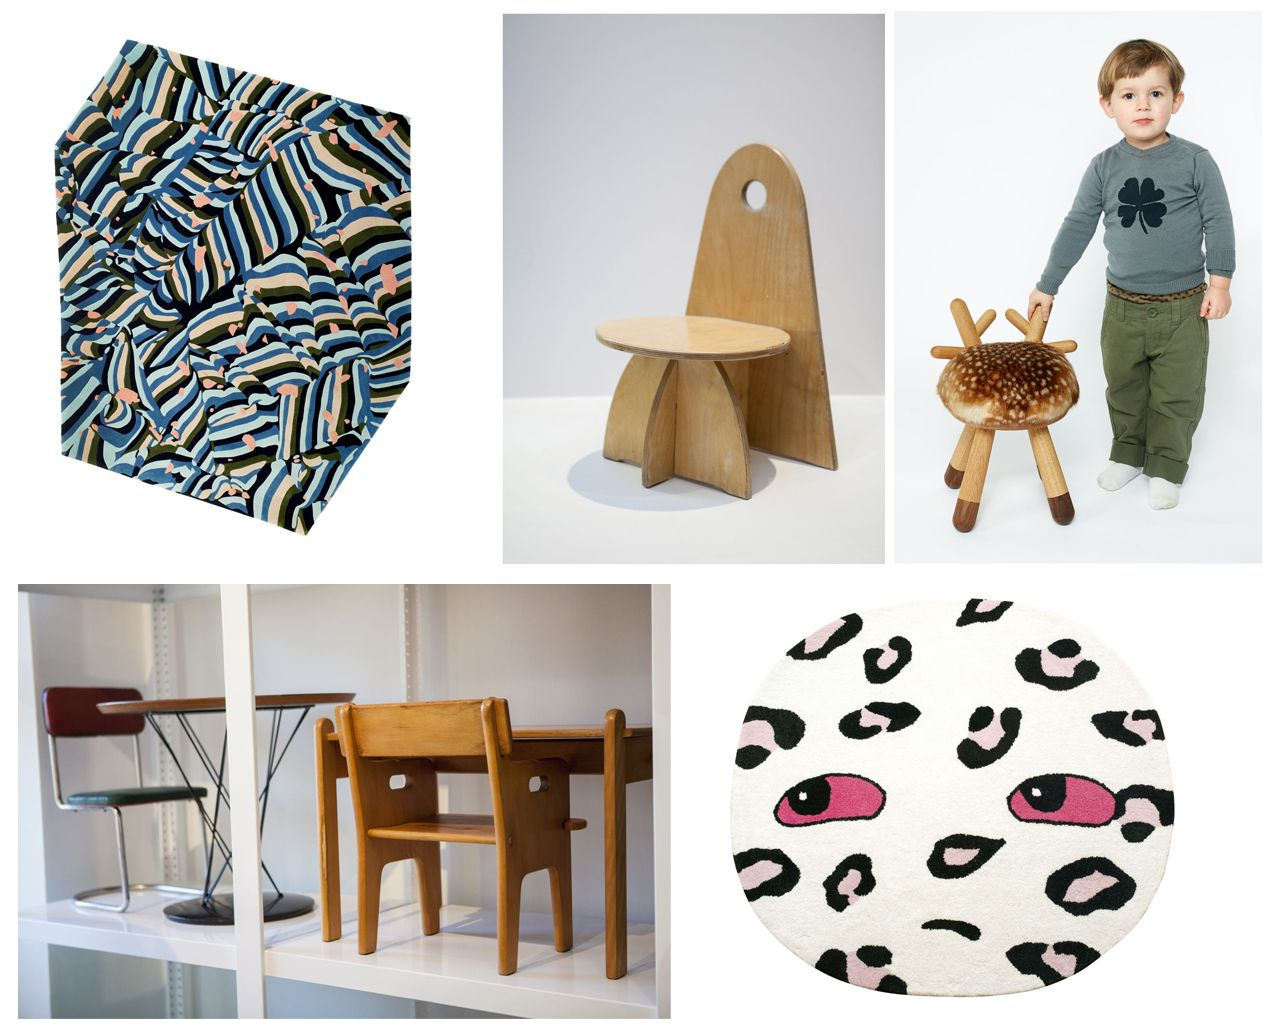 A small selection of the many pieces by Kinder Modern, New York